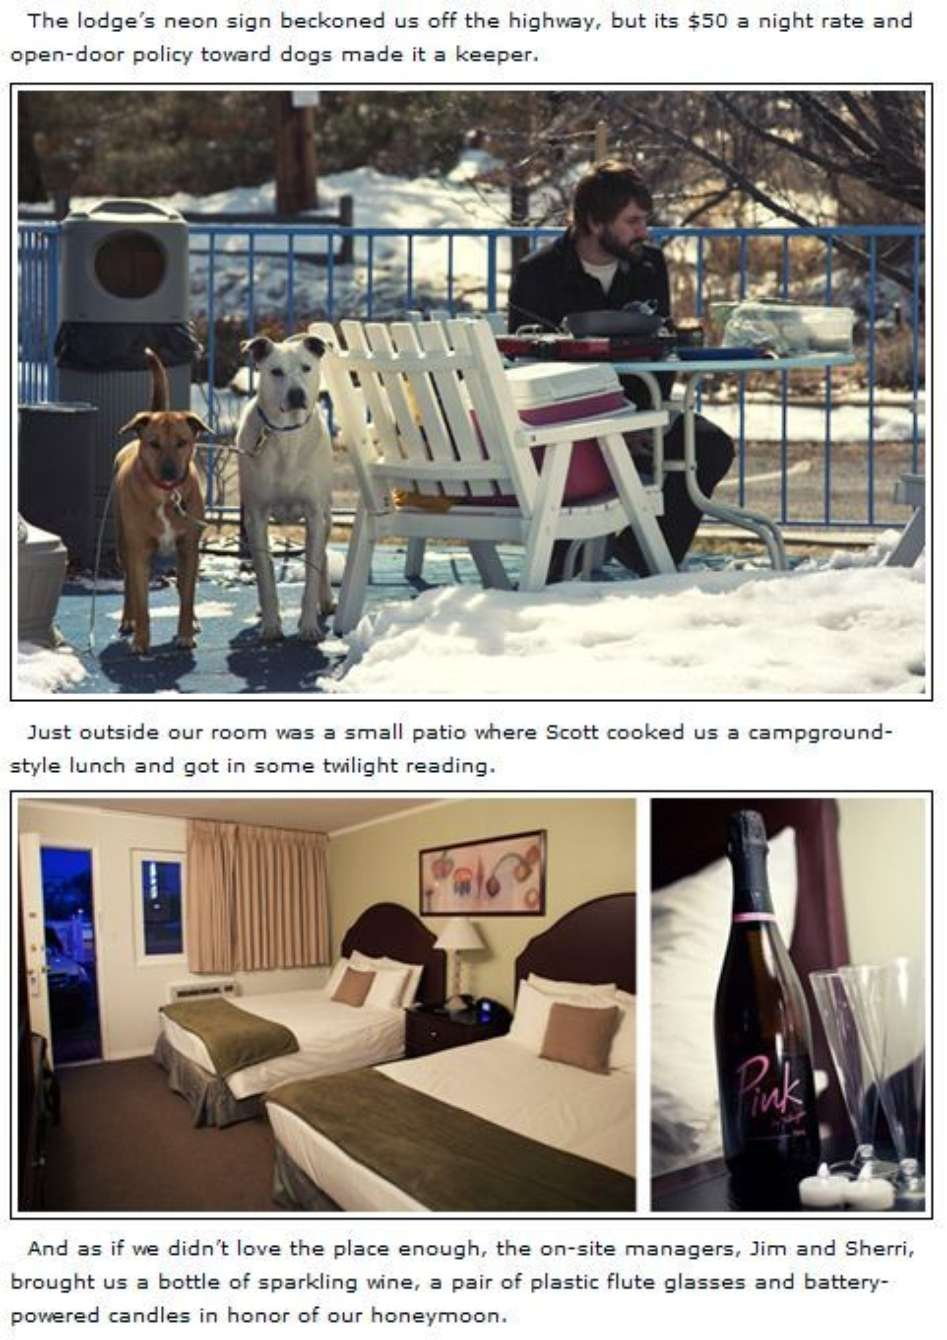 12 Legs Travel Blog article about Quail Park Lodge in Kanab, UT